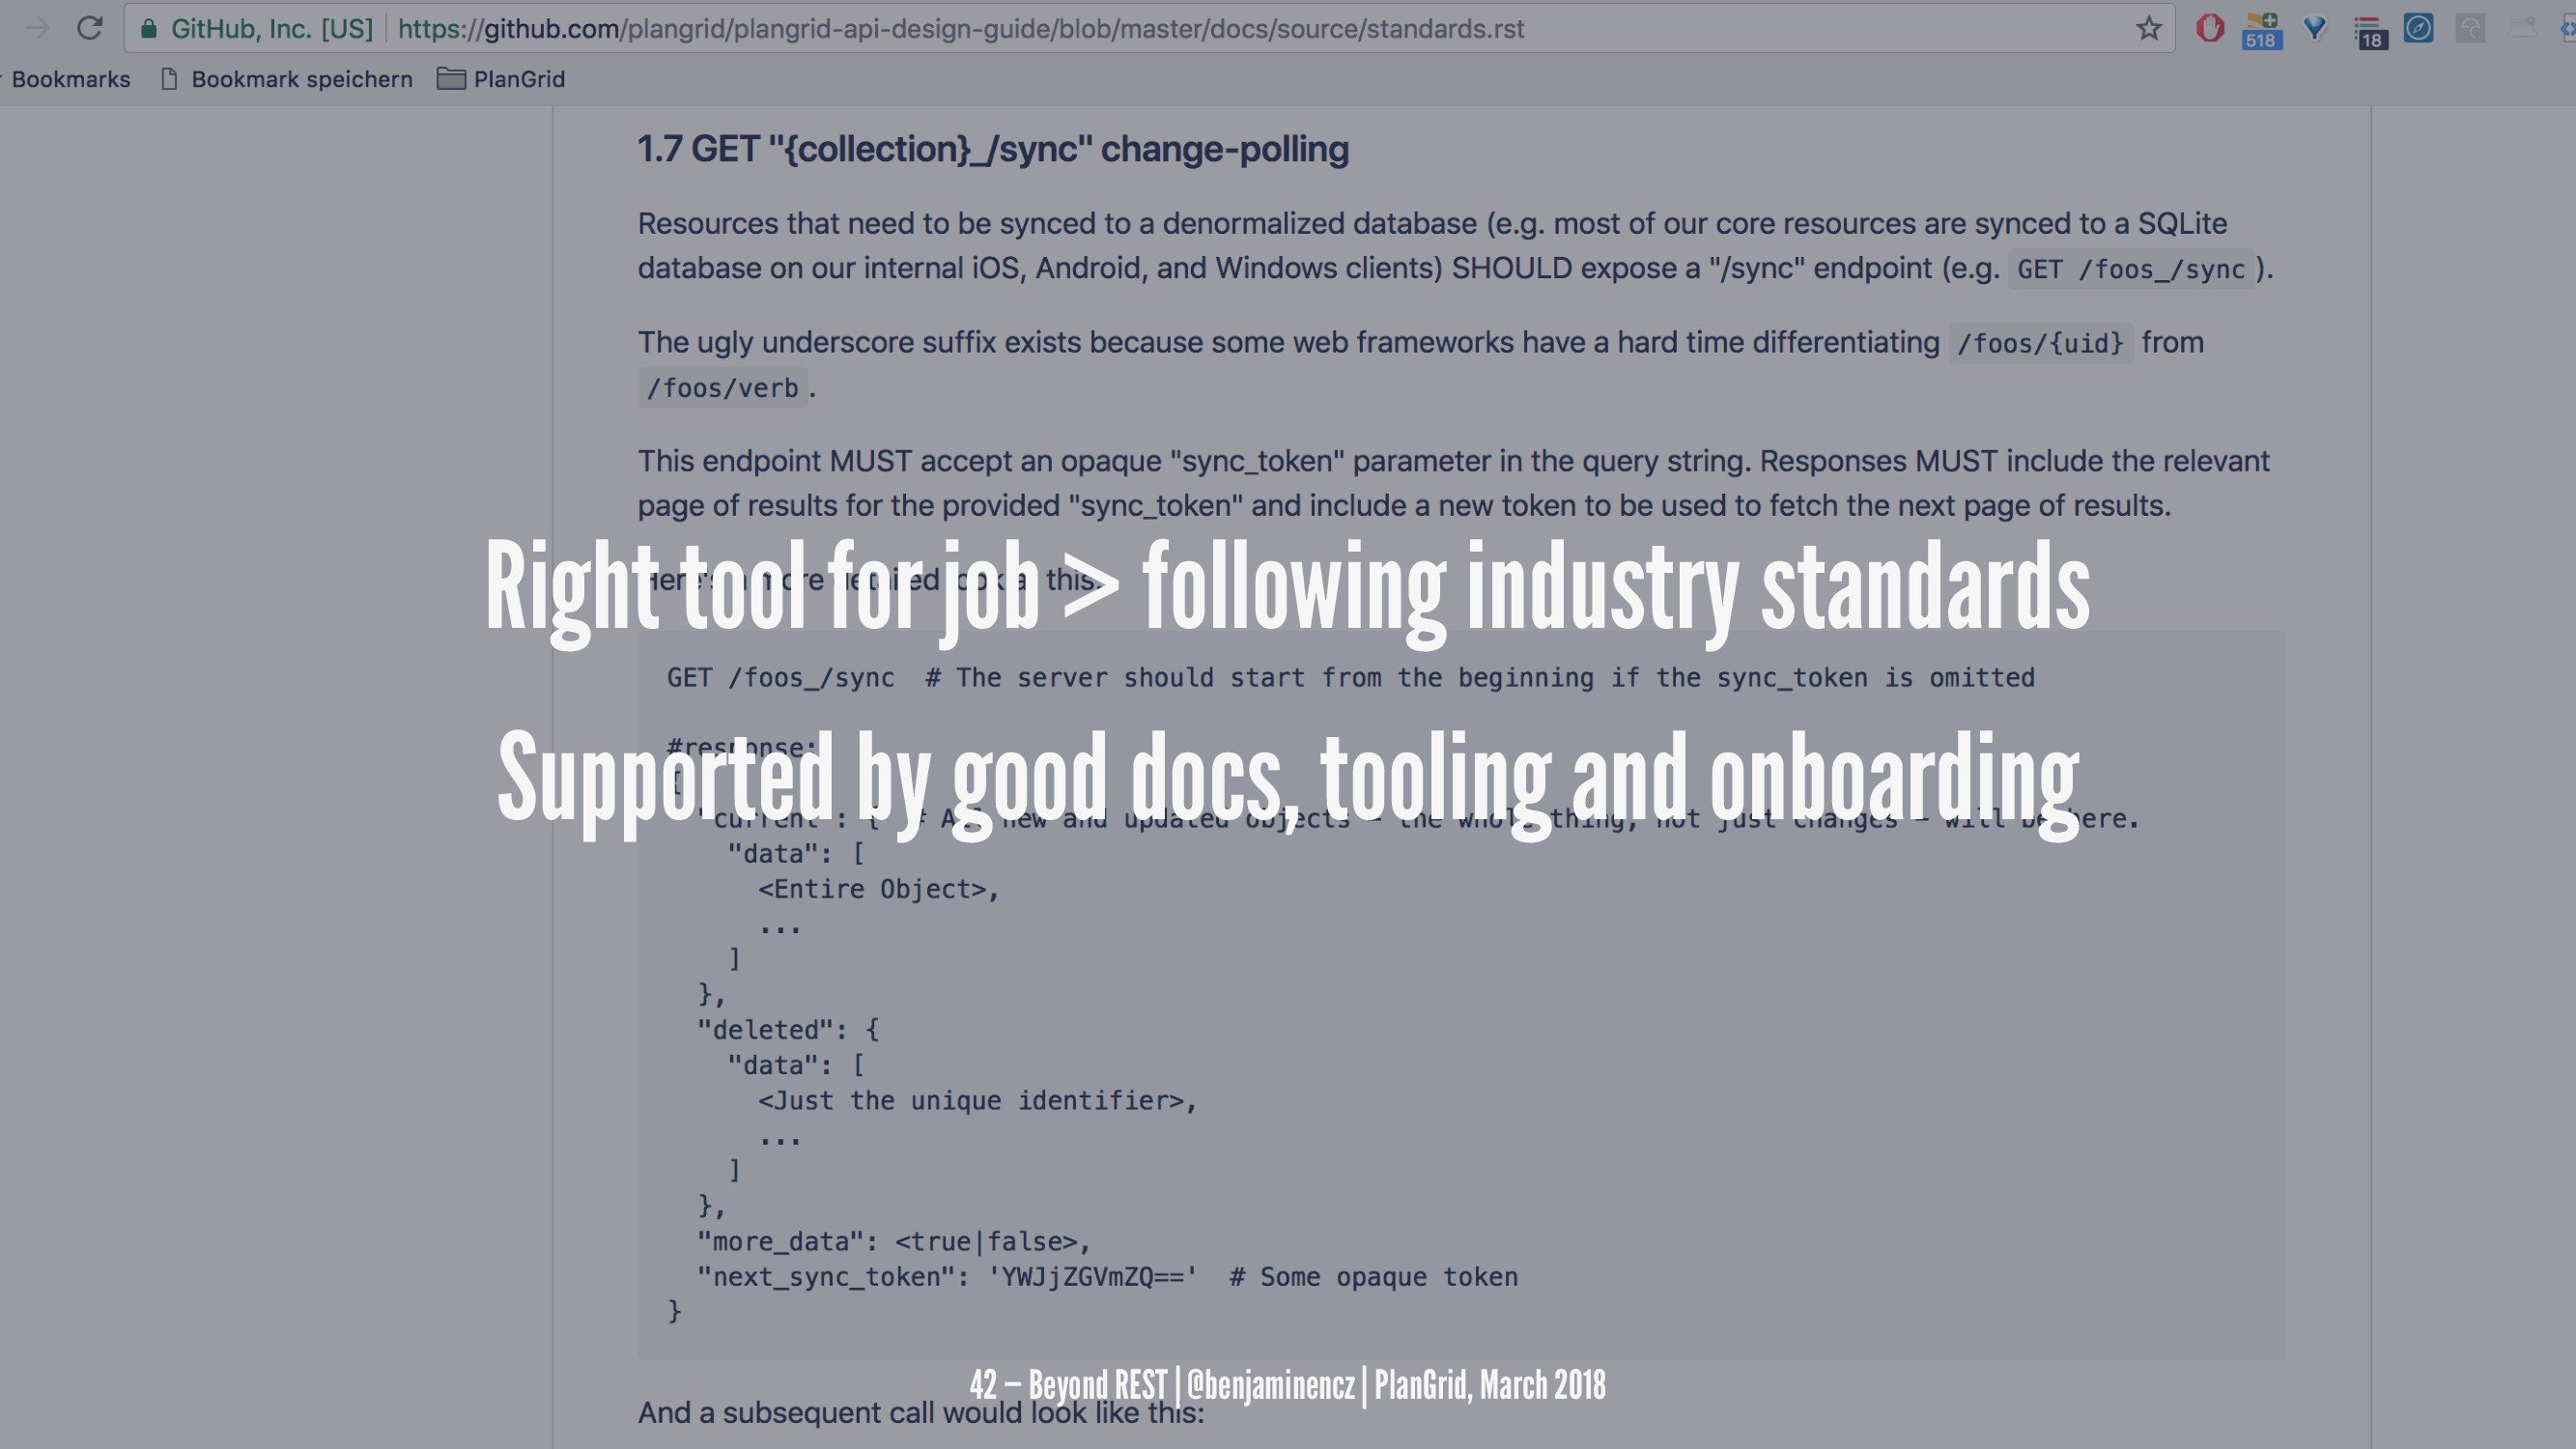 Right tool for job > following industry standar...